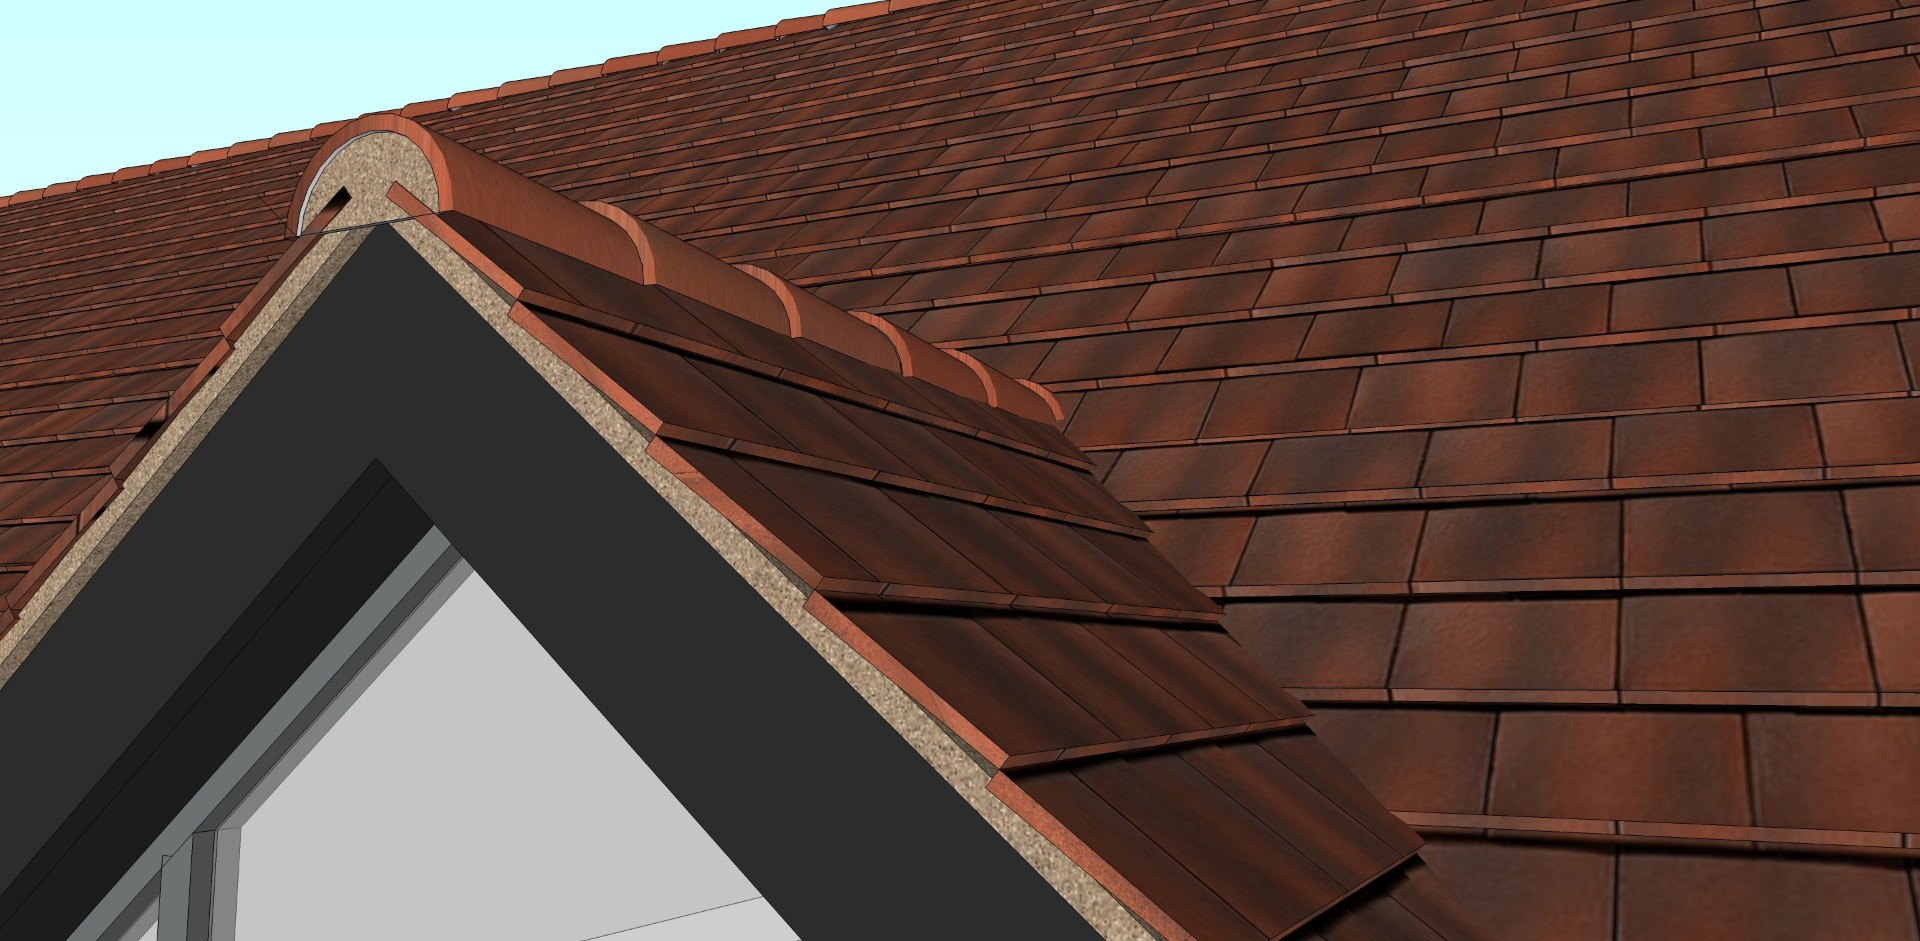 roof tile example.jpg